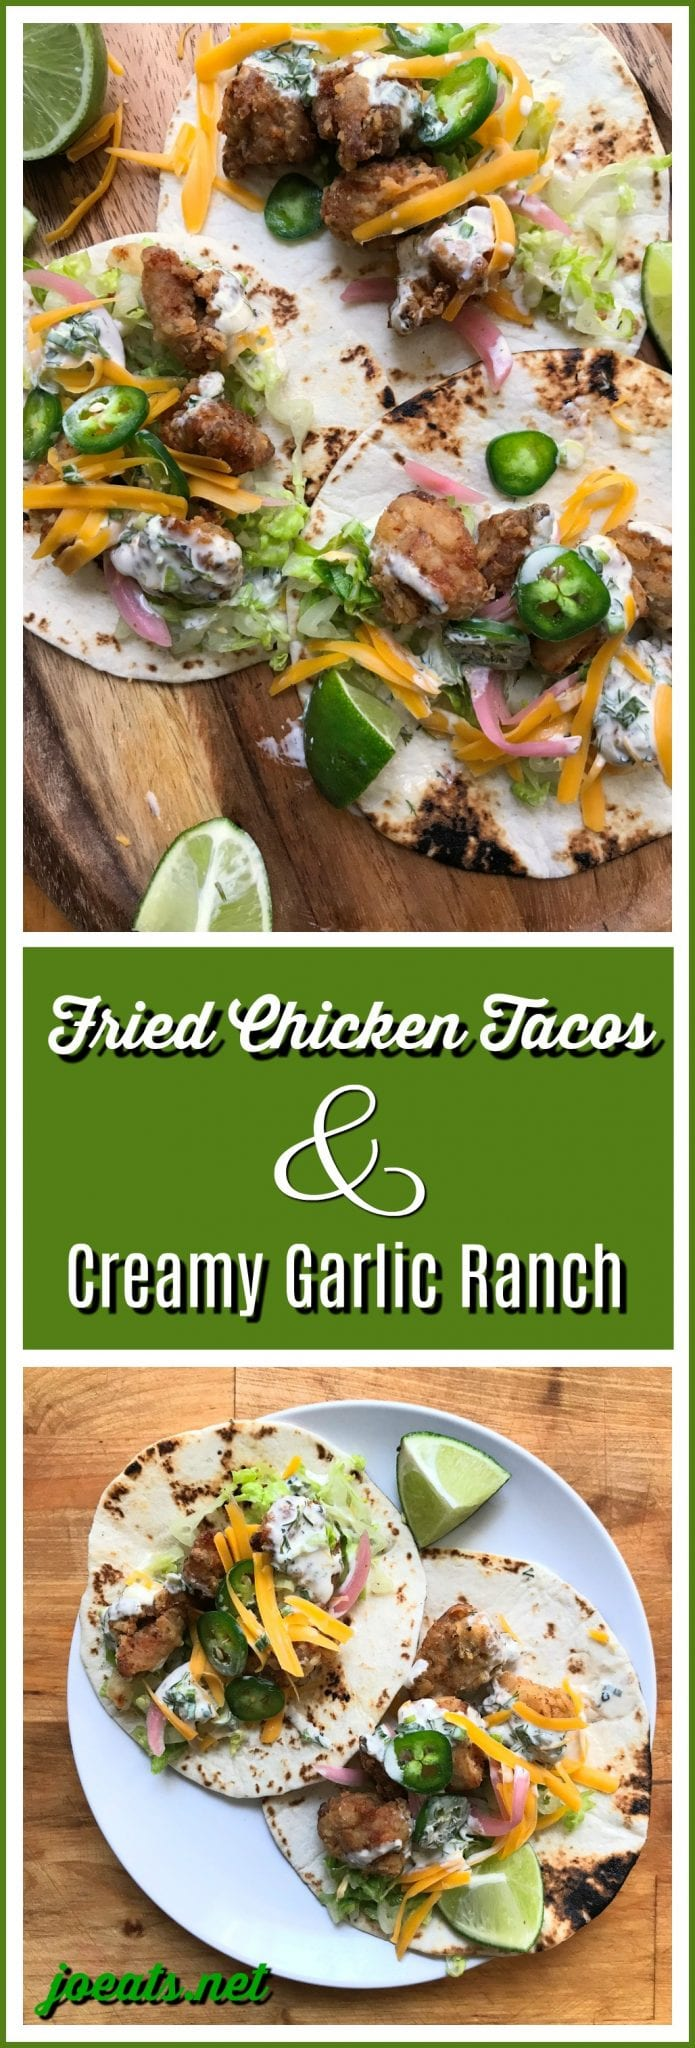 Fried Chicken Tacos with Creamy Garlic Ranch